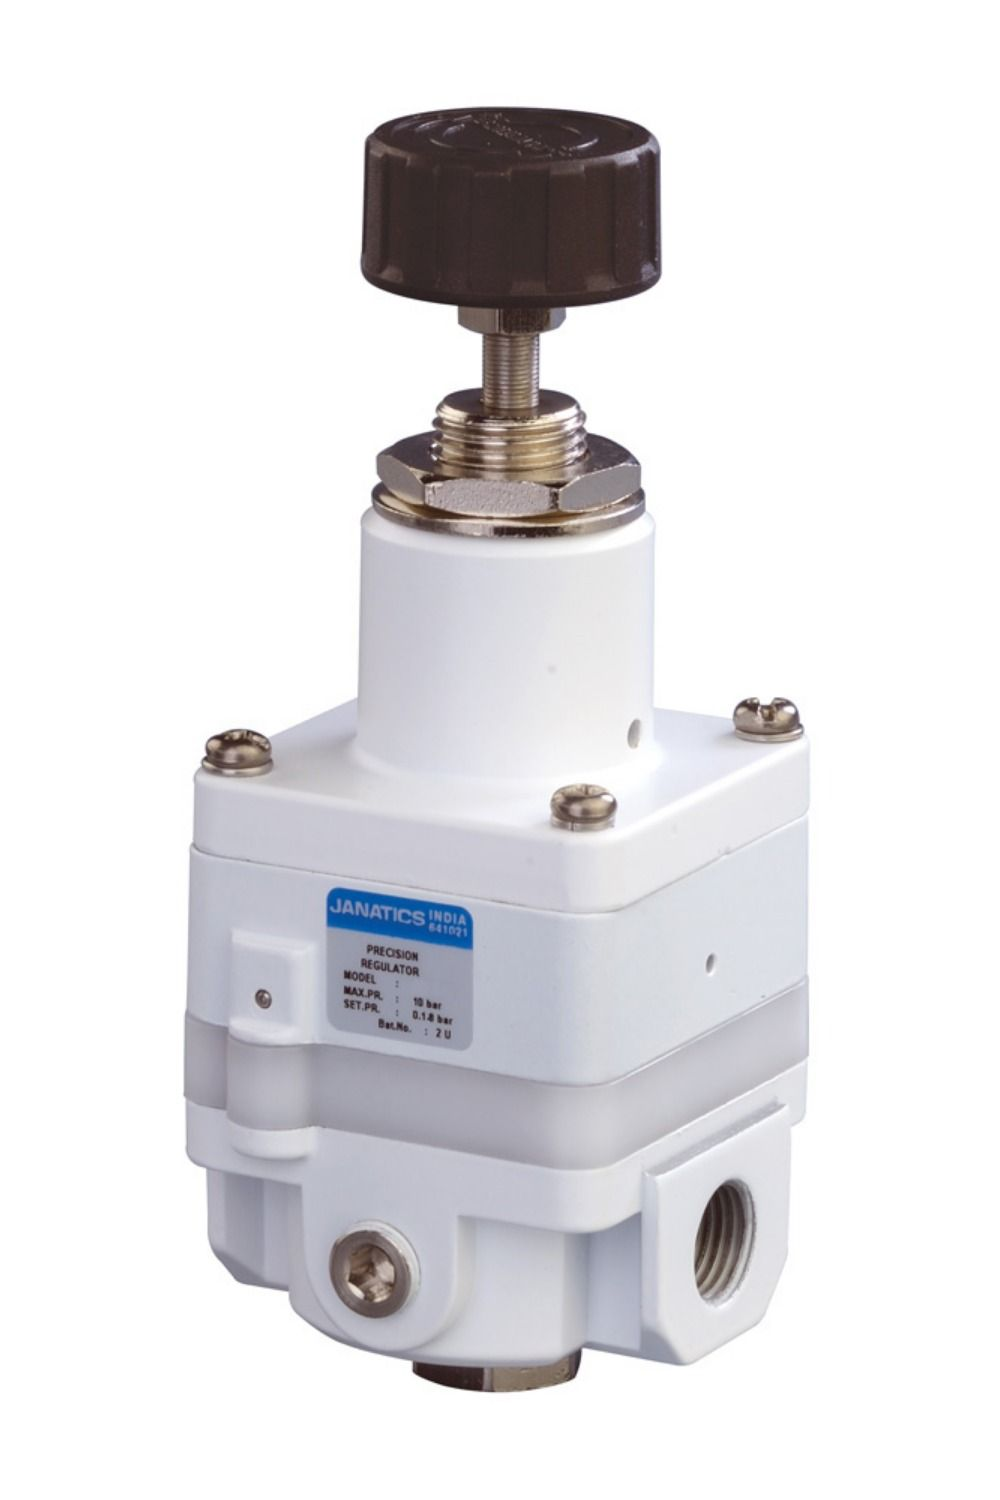 Features of Air Regulators: Conforms to ISO 6953 - 1